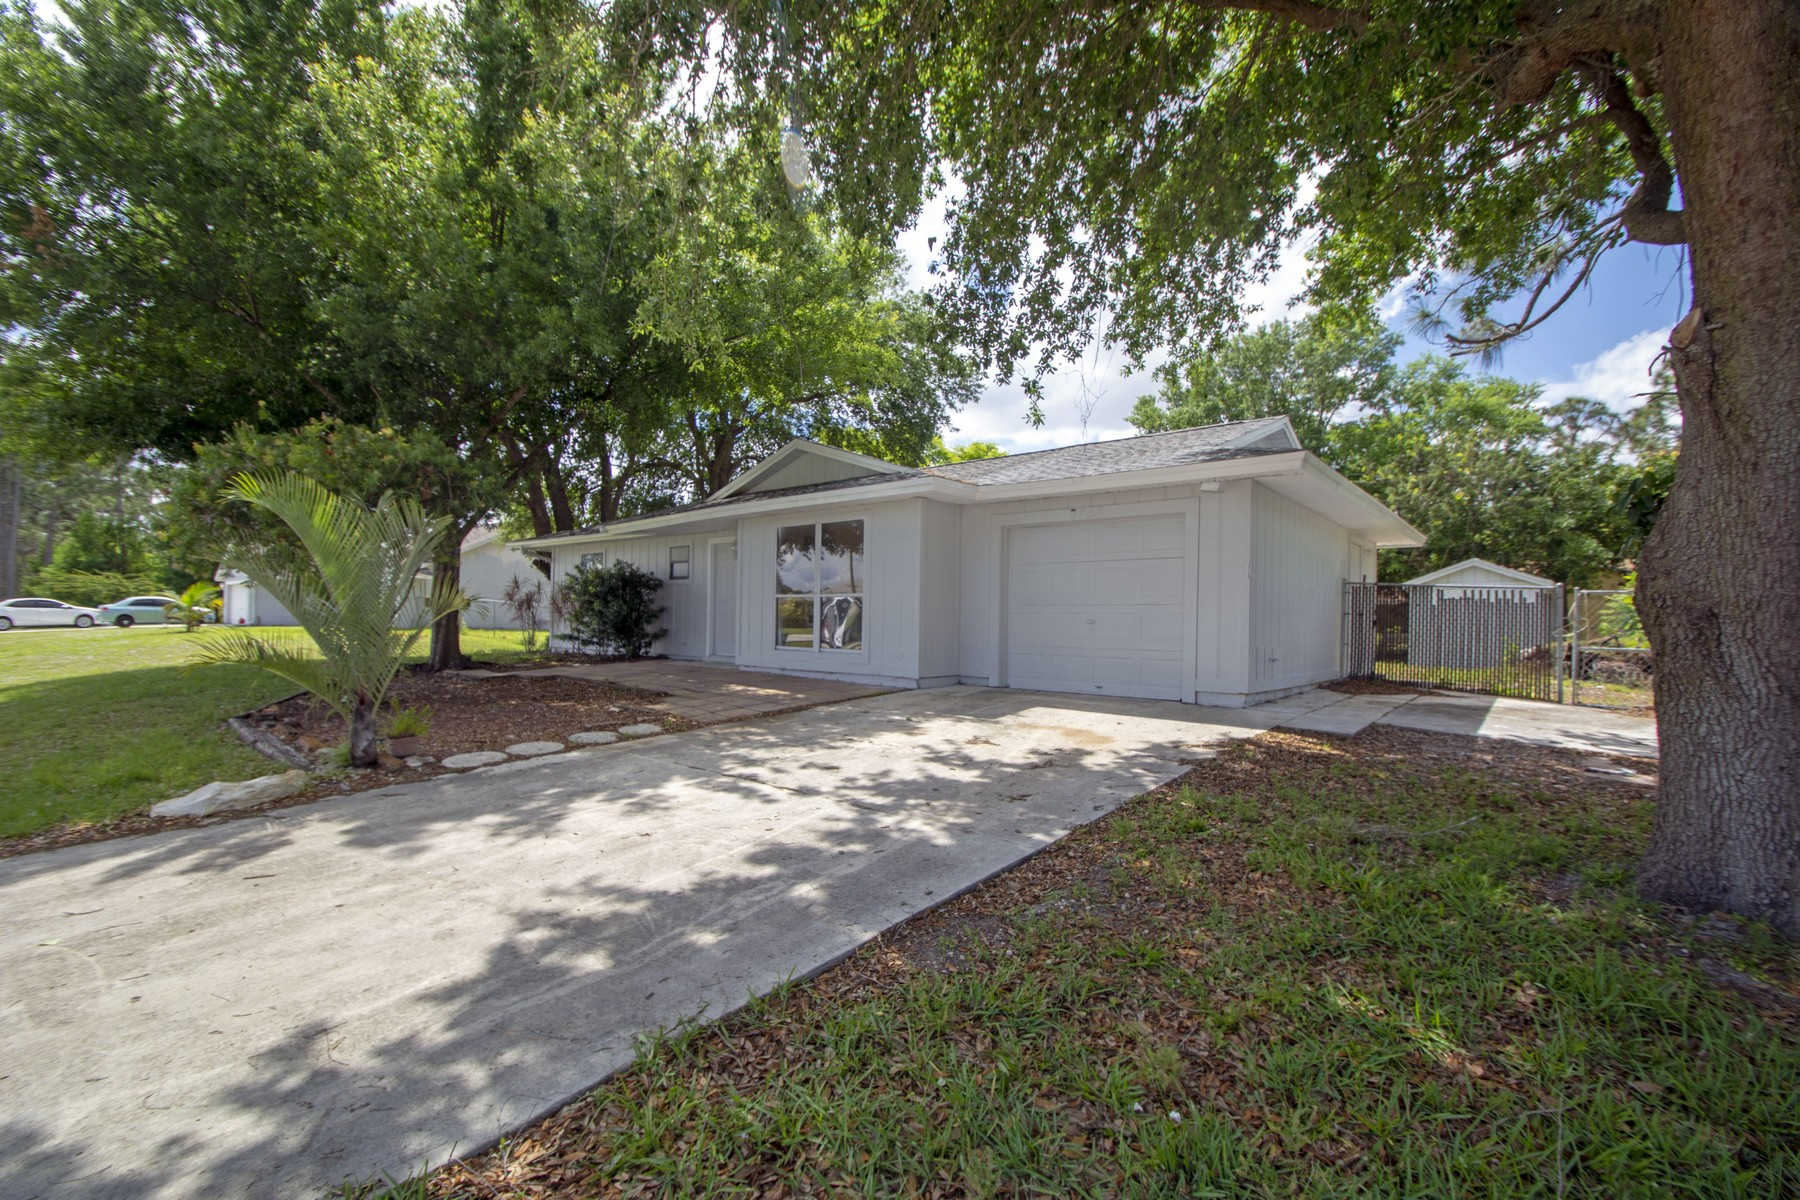 Single Family Home for Sale at Cozy Home on a Beautiful Street 3450 SW Englewood St Port St. Lucie, Florida 34953 United States